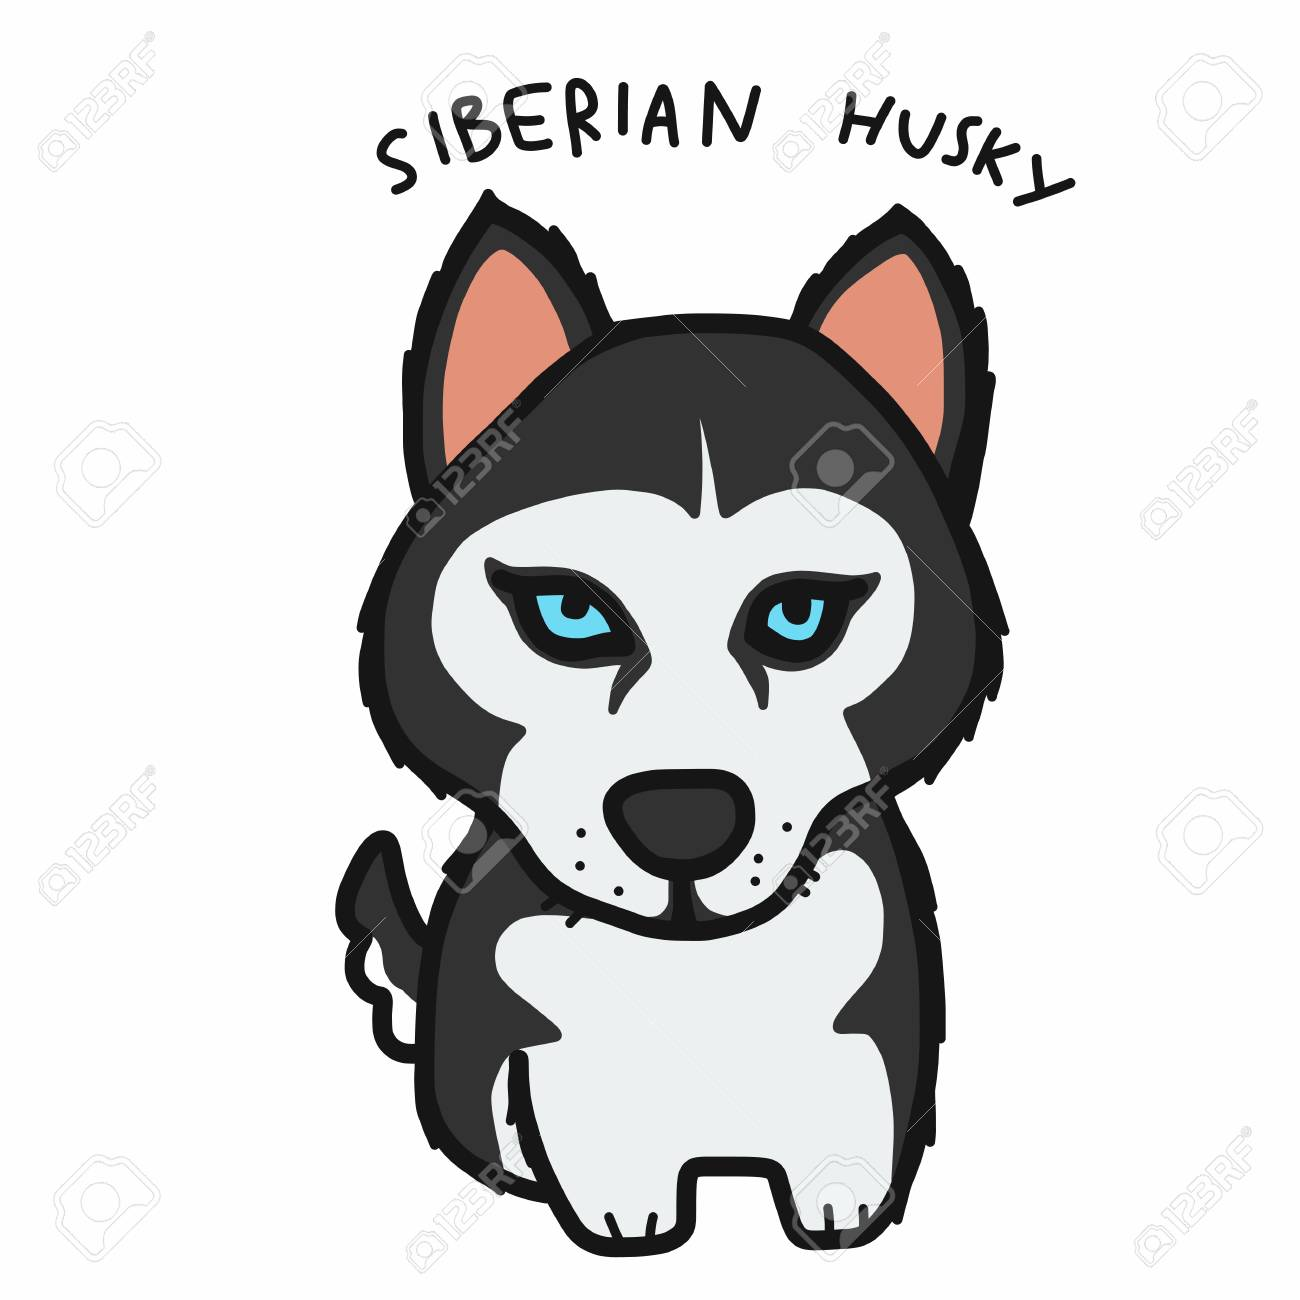 Siberian Husky Dog Cartoon Vector Illustration Royalty Free Cliparts Vectors And Stock Illustration Image 109588793